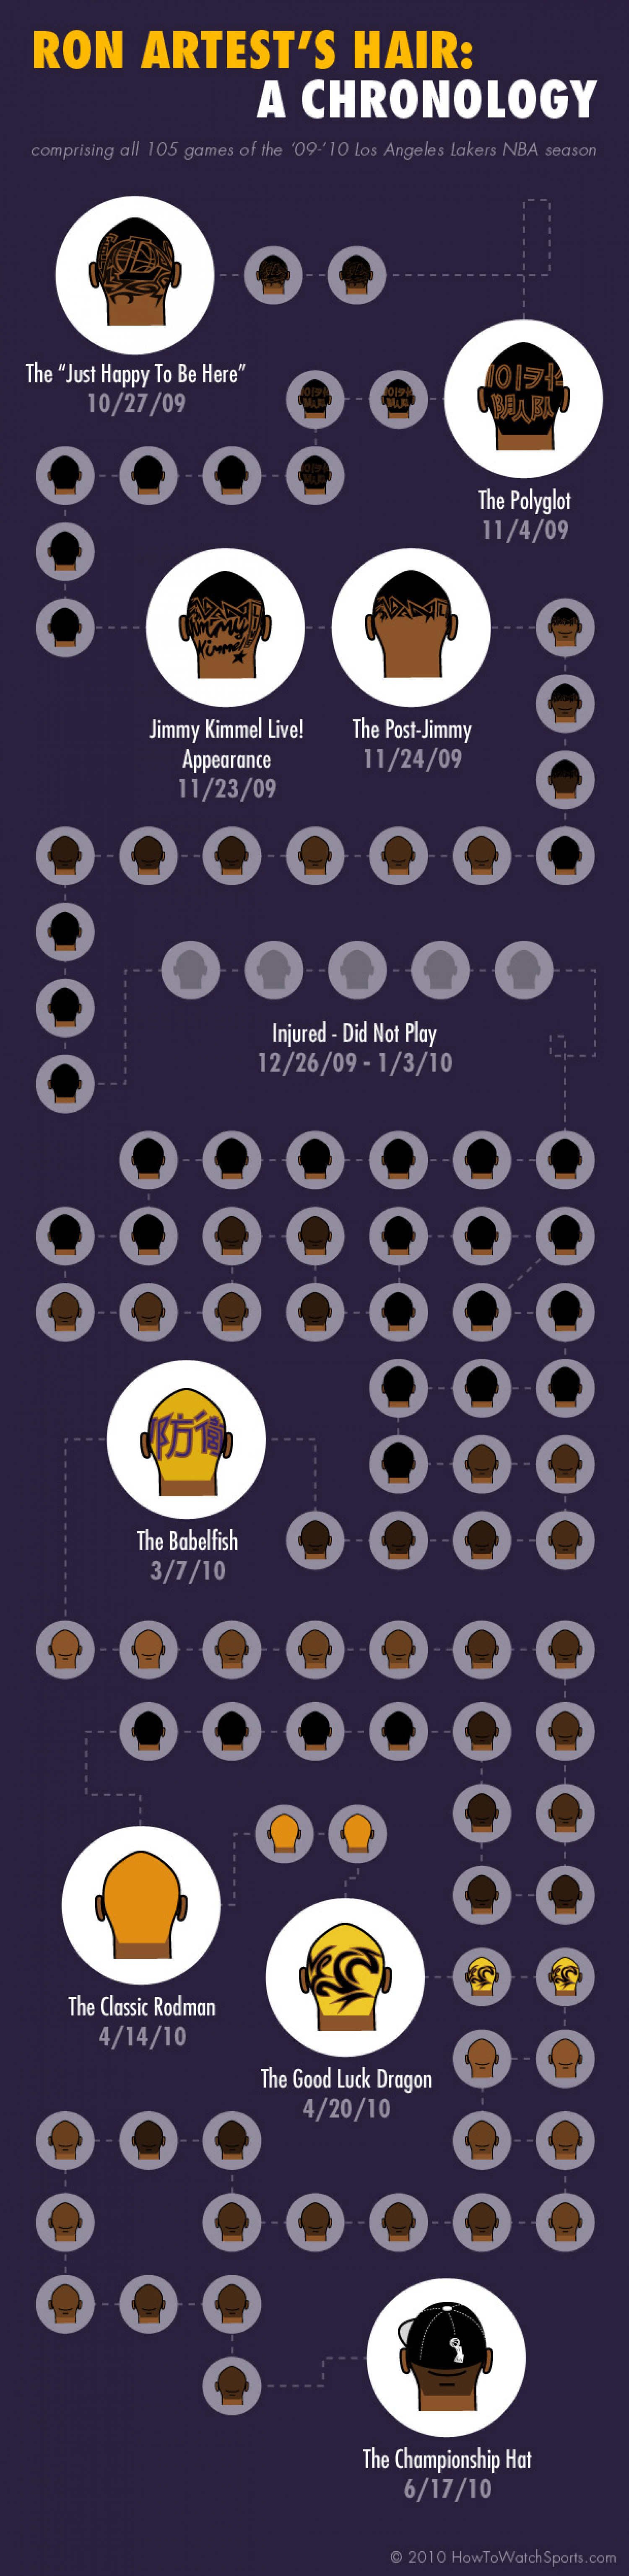 Ron Artest's Hair: A Chronology  Infographic